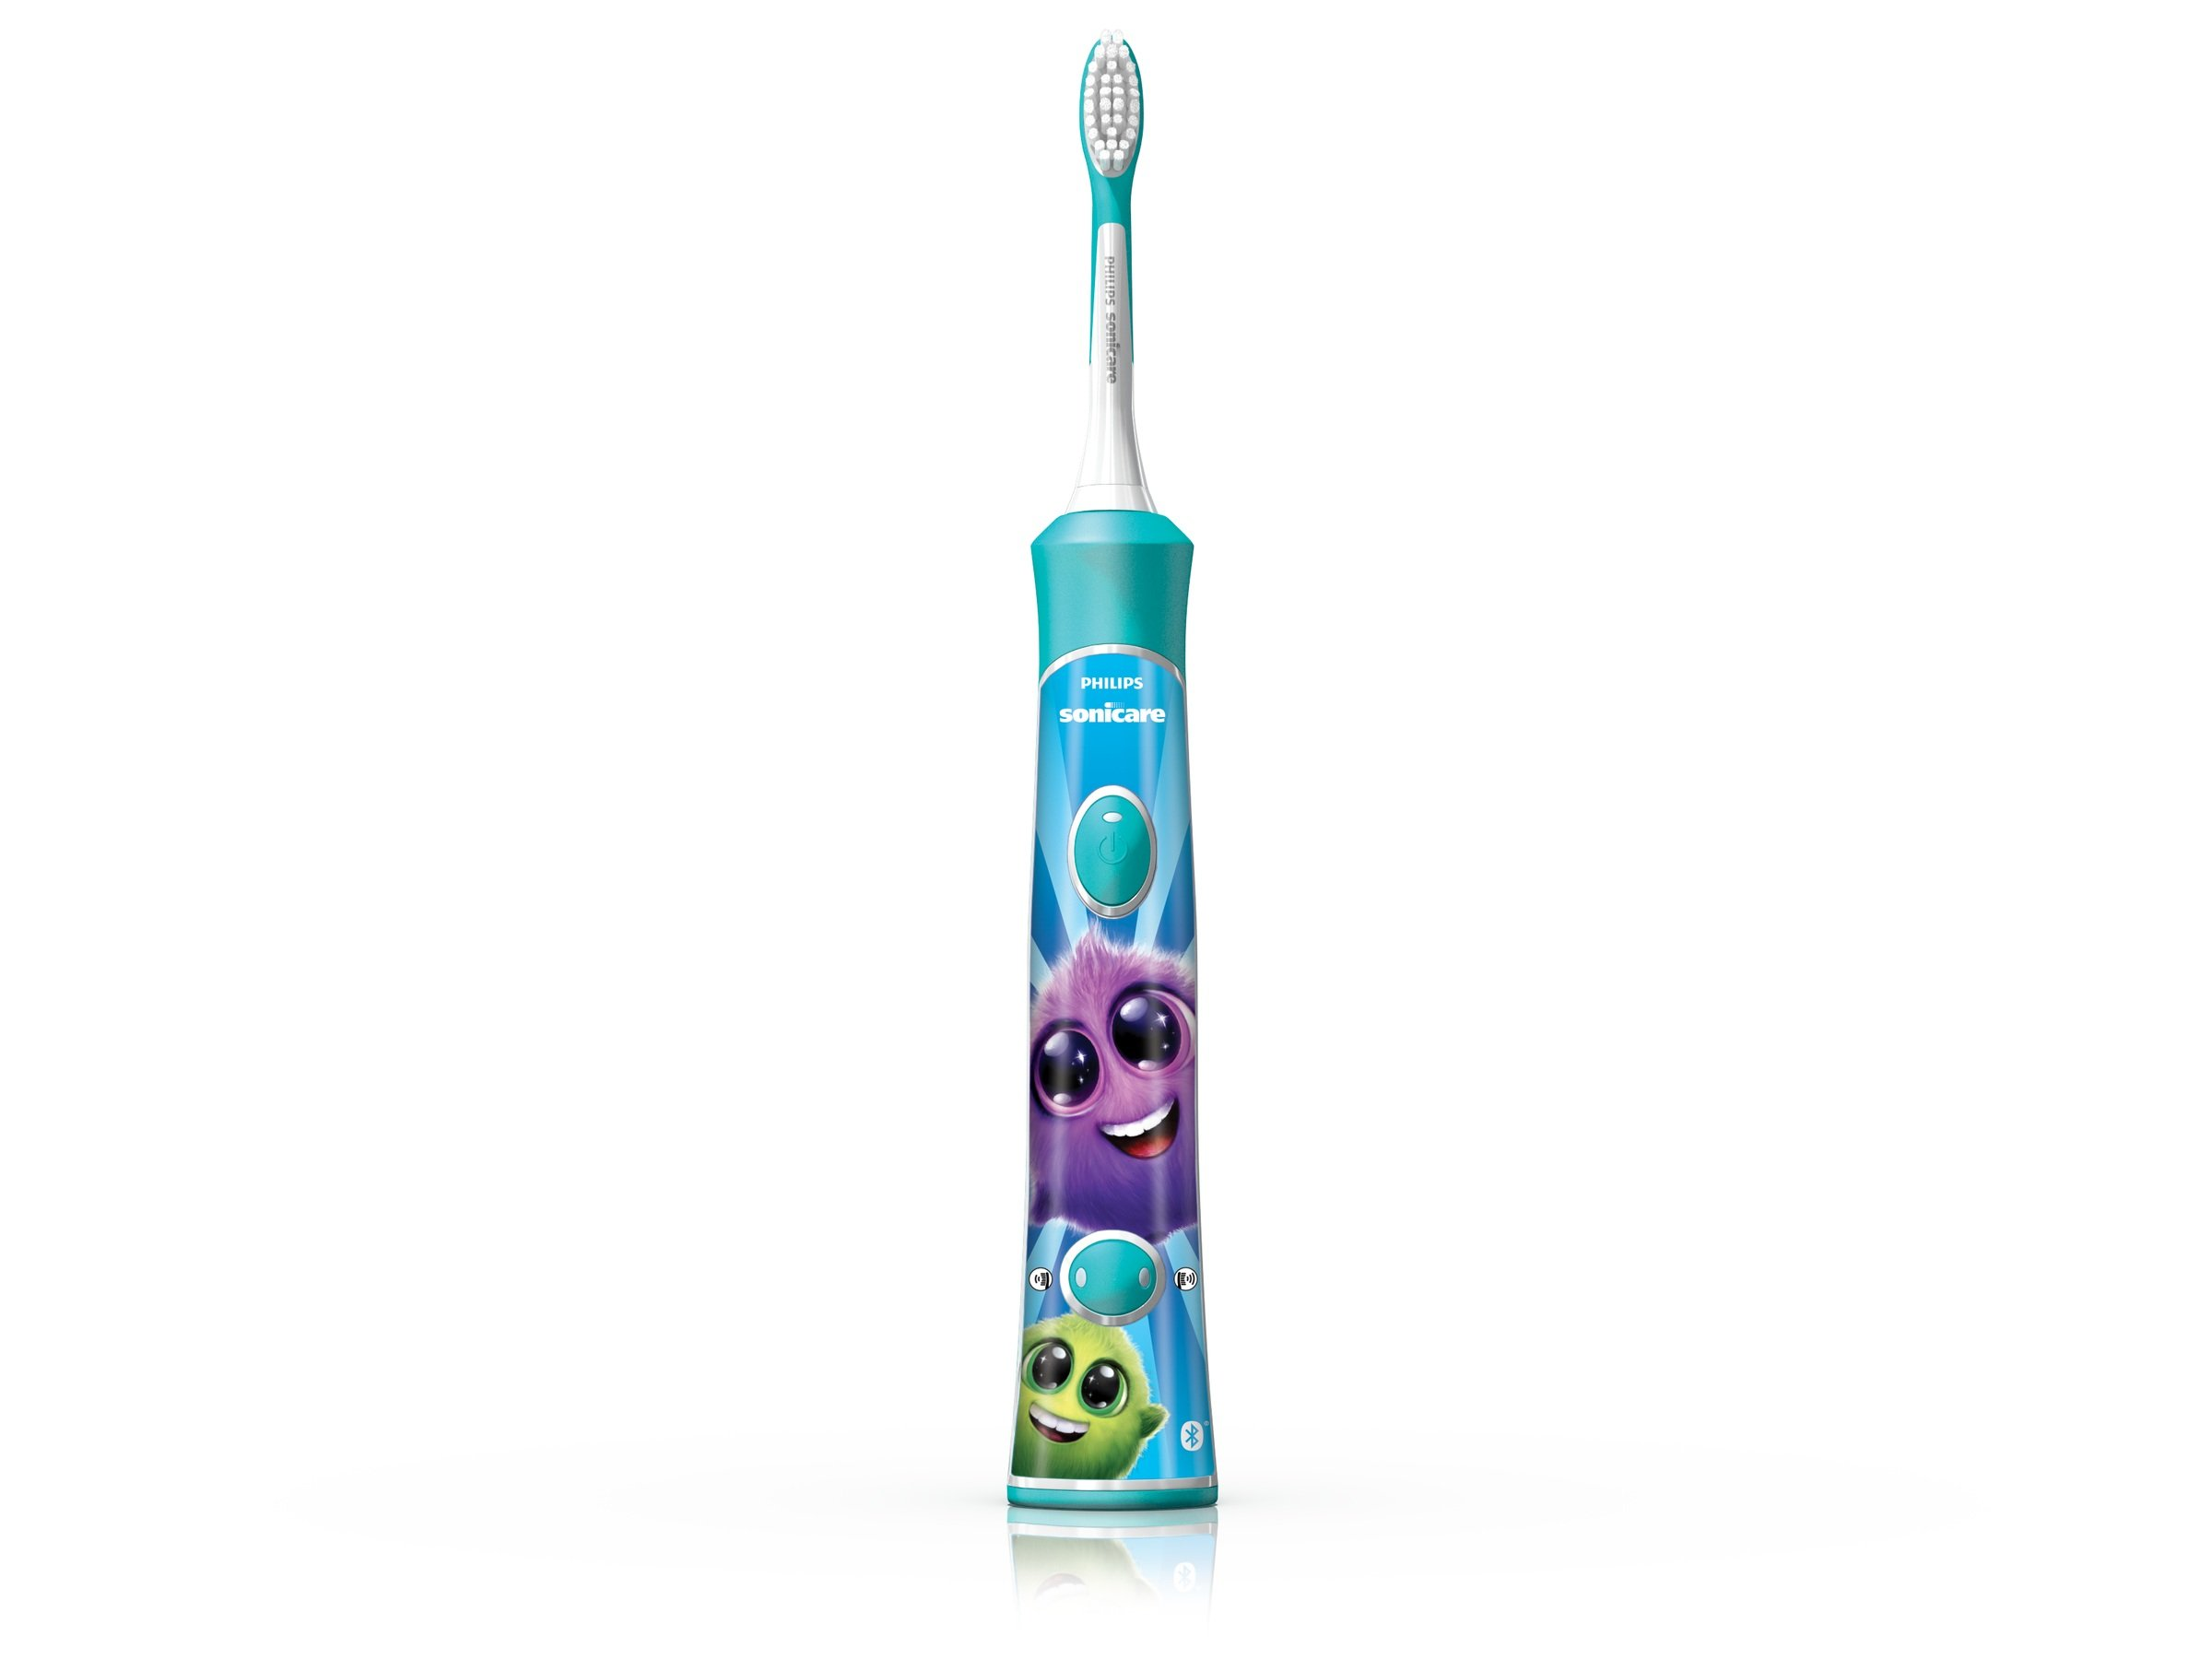 Philips Sonicare for Kids Bluetooth Connected Rechargeable Electric Toothbrush, HX6321/02 by Philips Sonicare (Image #7)